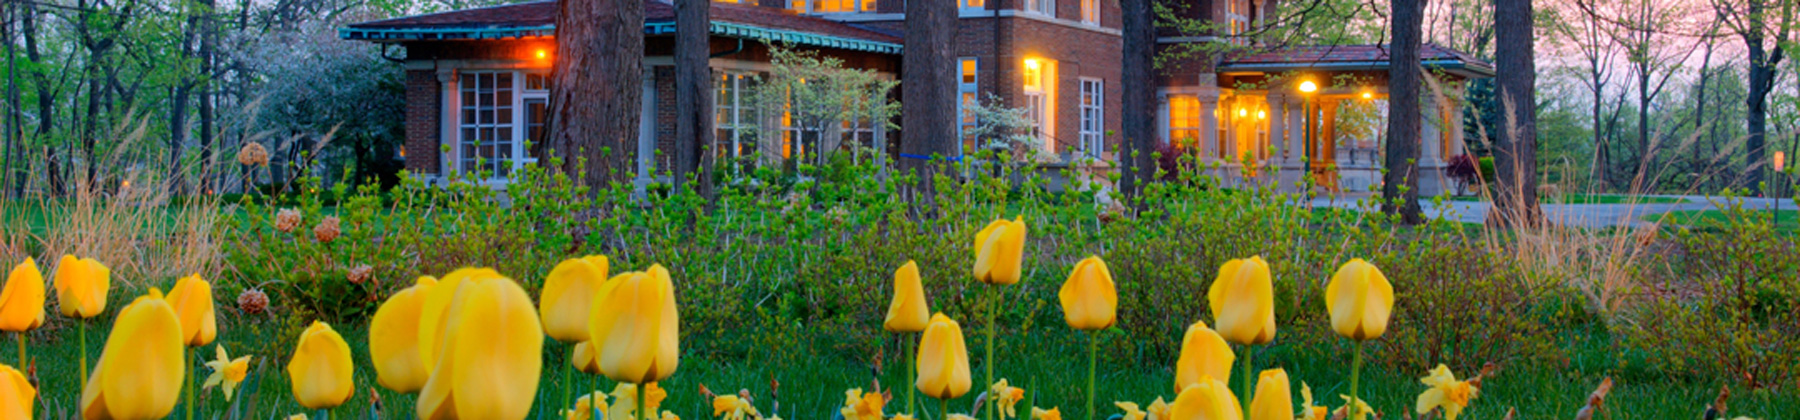 allision-mansion-tulips-at-dusk